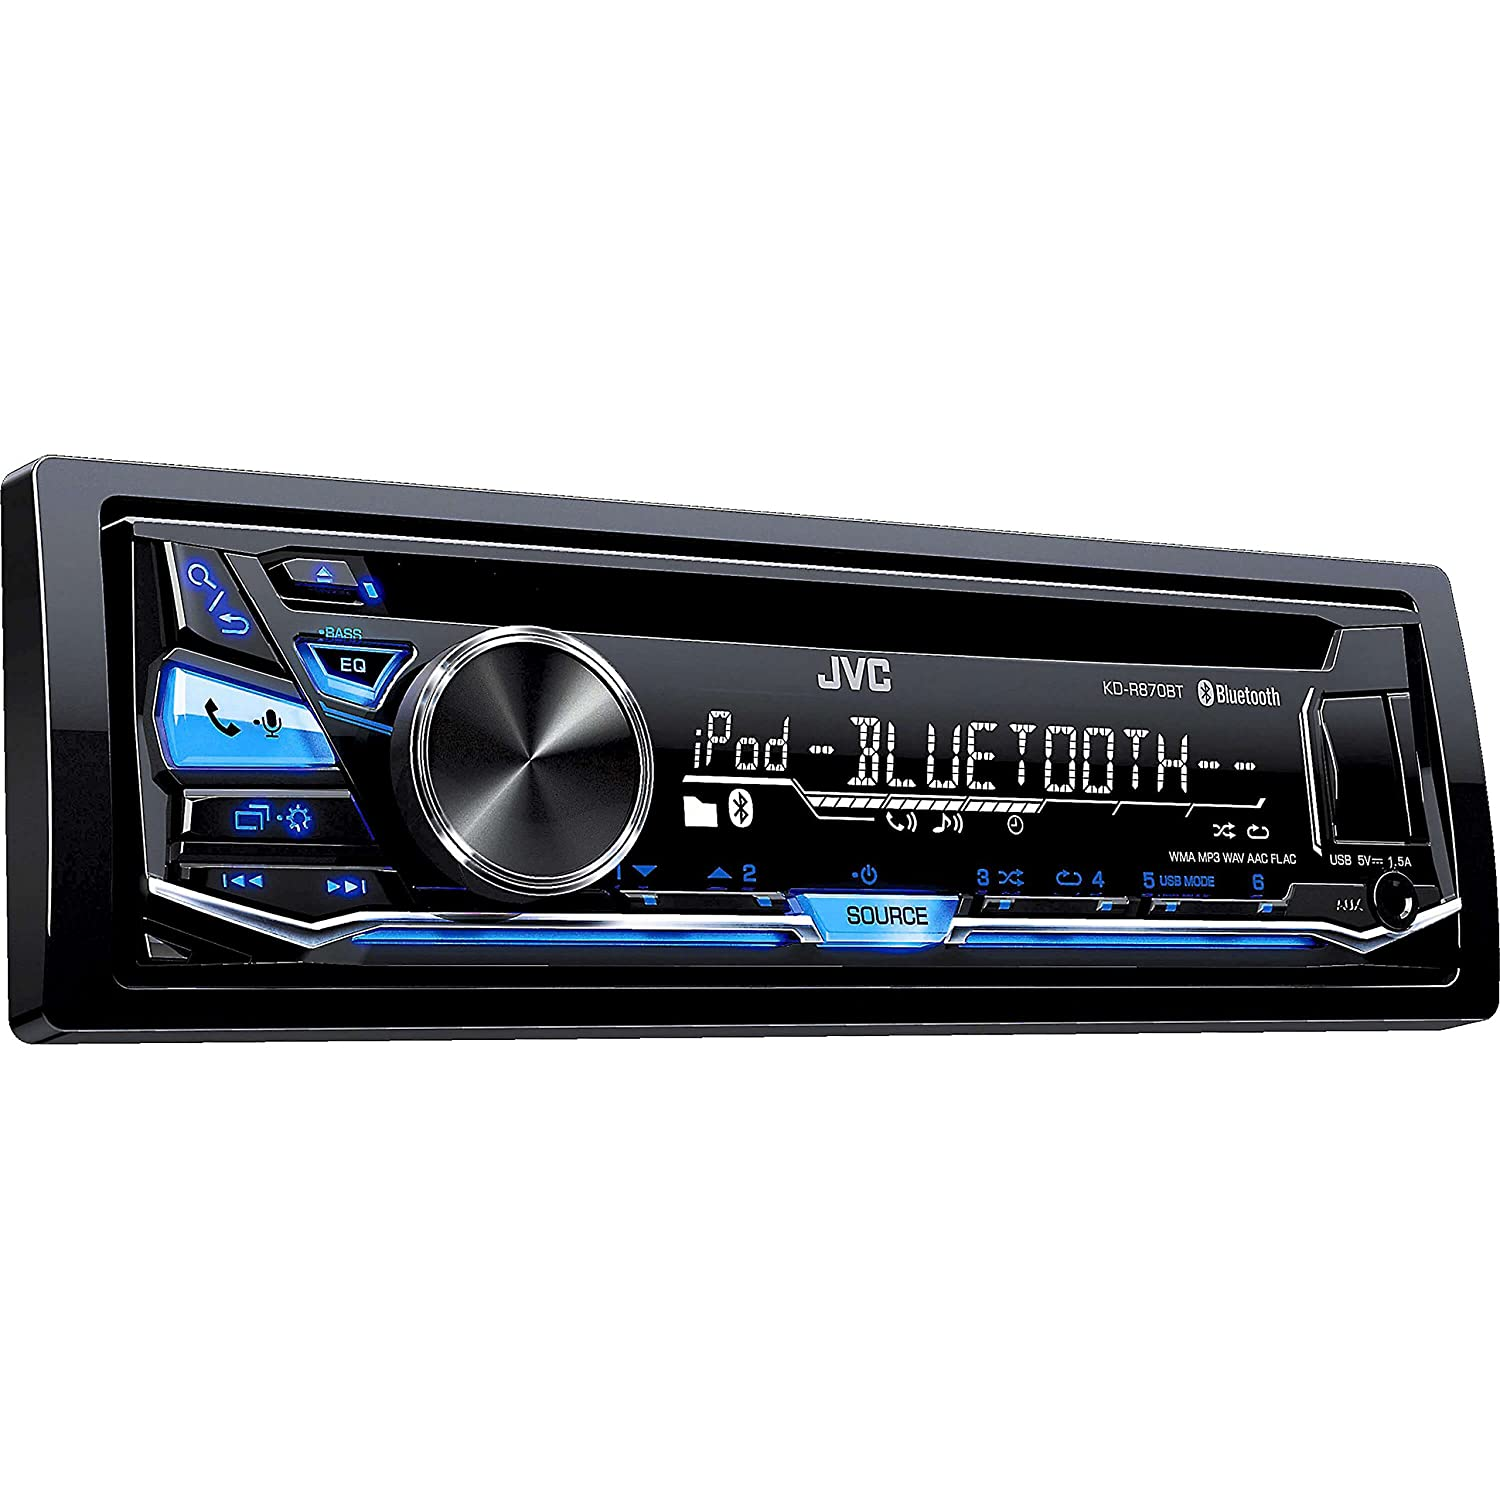 Amazon.com: JVC KD-R870BT CD/MP3 Car Stereo USB AUX AM/FM Radio iPod/iPhone/Android  Receiver with Dual Phone Connection Built in Bluetooth and Hands Free ...